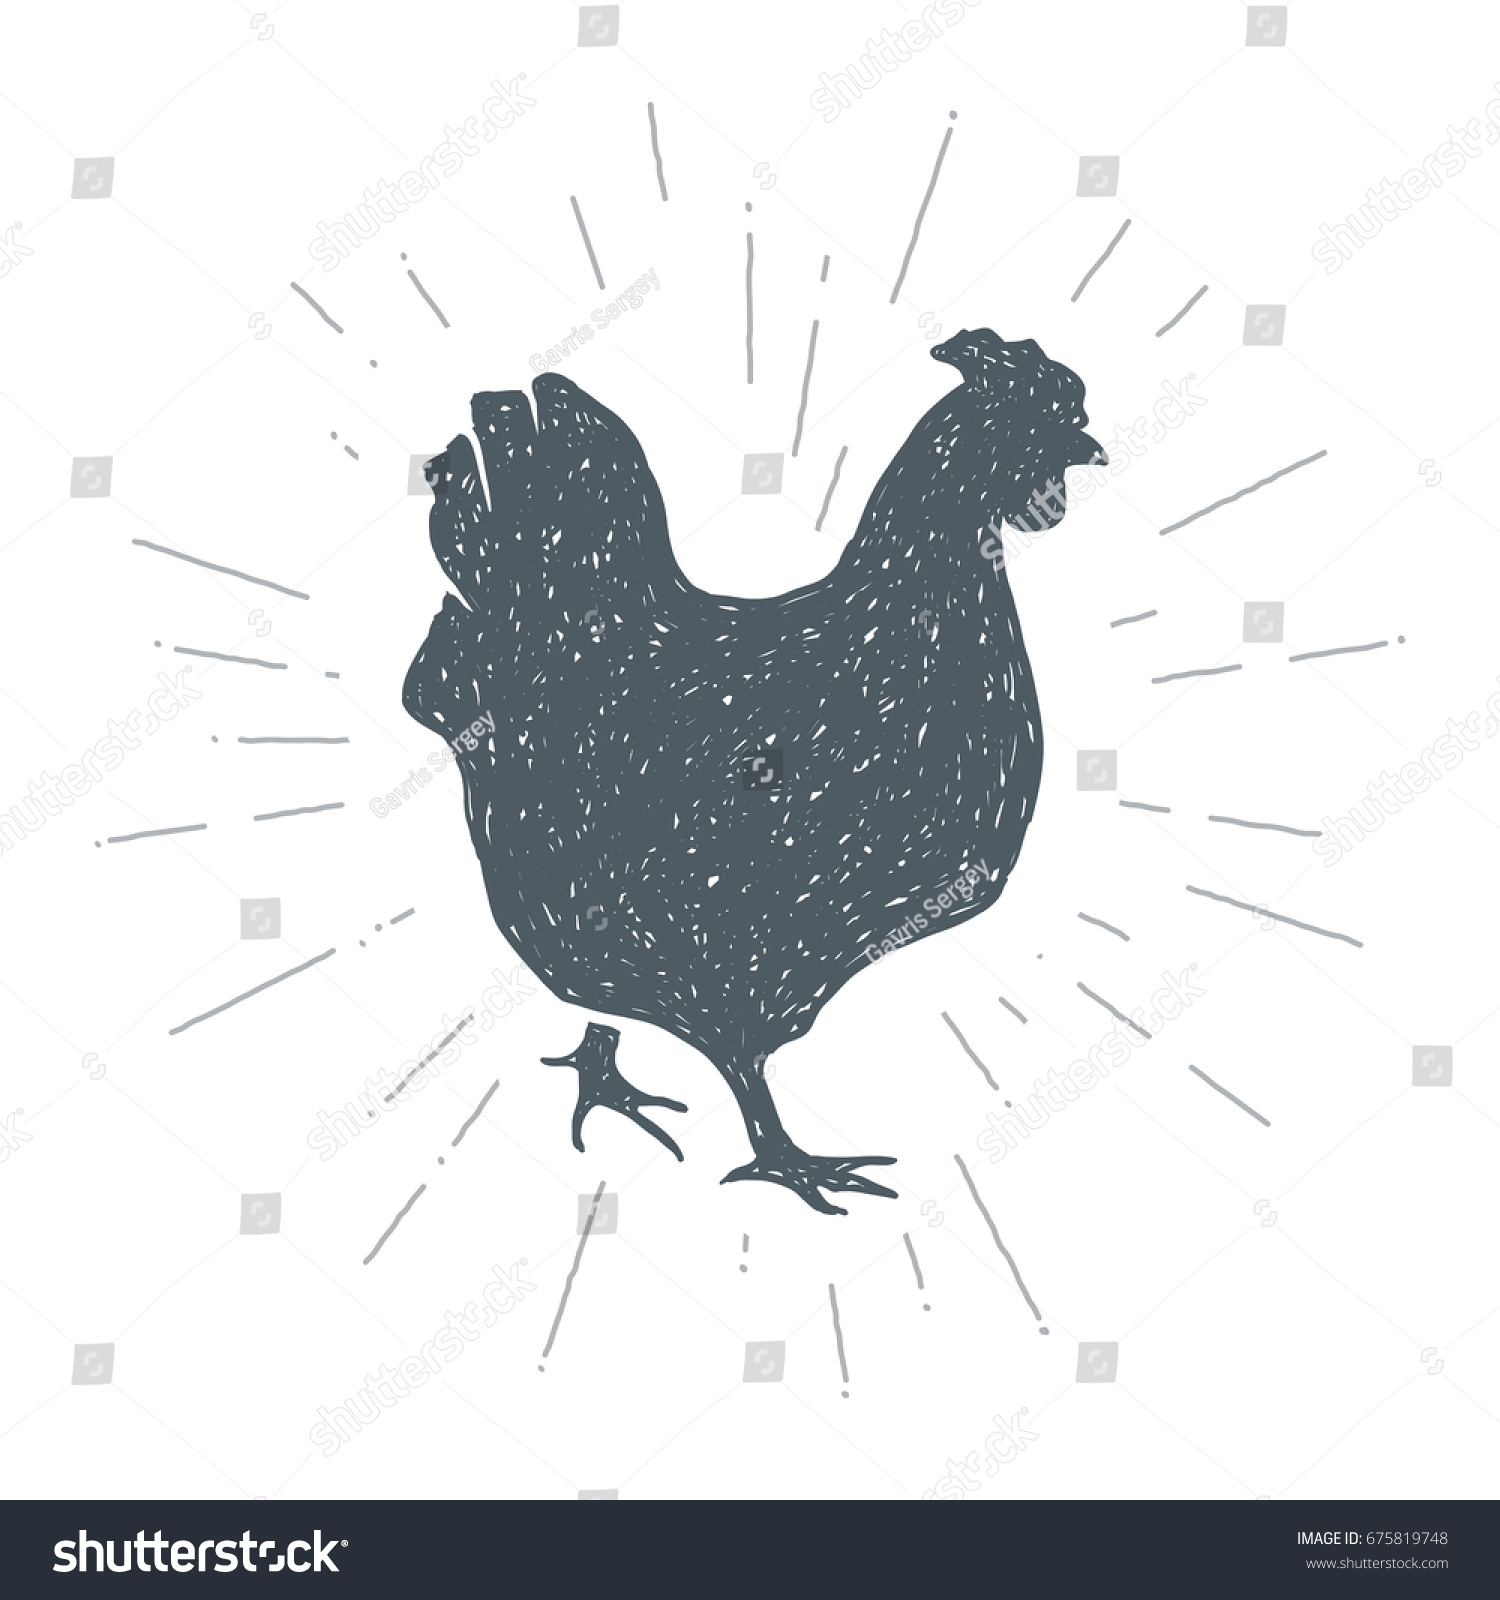 hand drawn vintage chicken sketch style stock vector 675819748